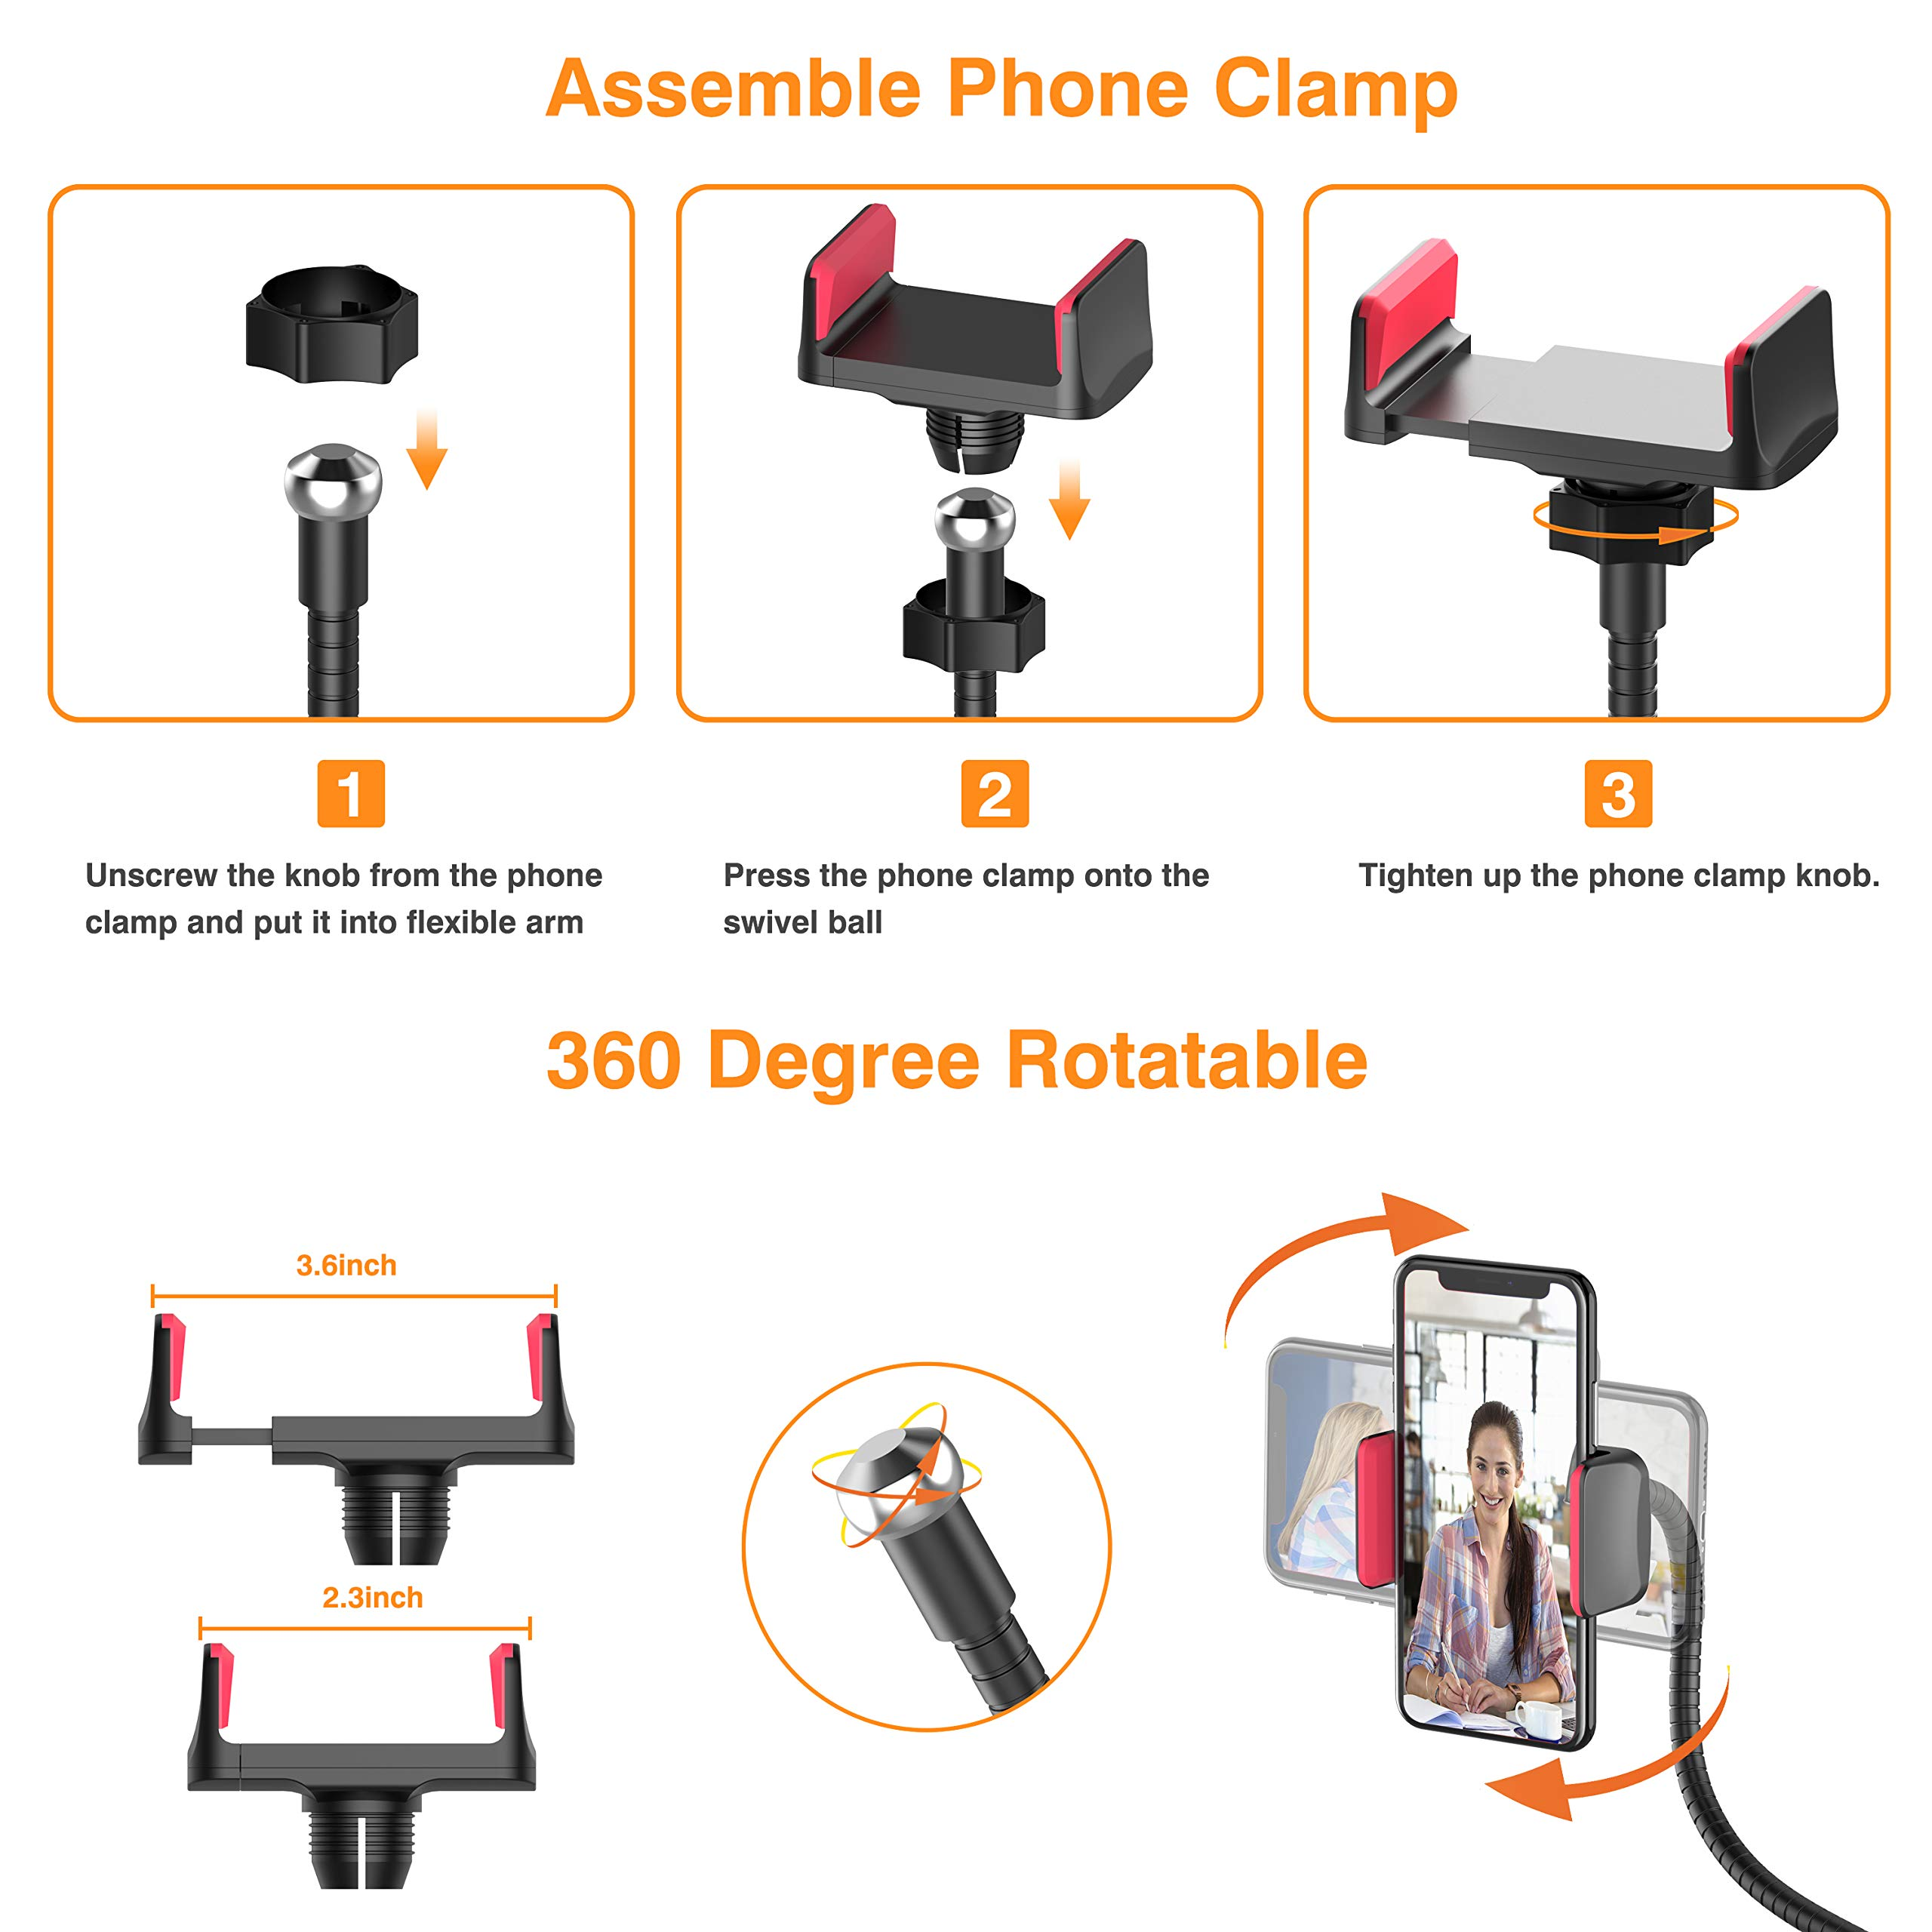 Selfie Ring Light, UPGRADED Selfie Light with Cell Phone Holder Stand for Live Stream Makeup Including Remote Shutter, LED Camera Light 3 Light Mode 10 Level Brightness Flexible Arm for iPhone/Android by Erligpowht (Image #6)